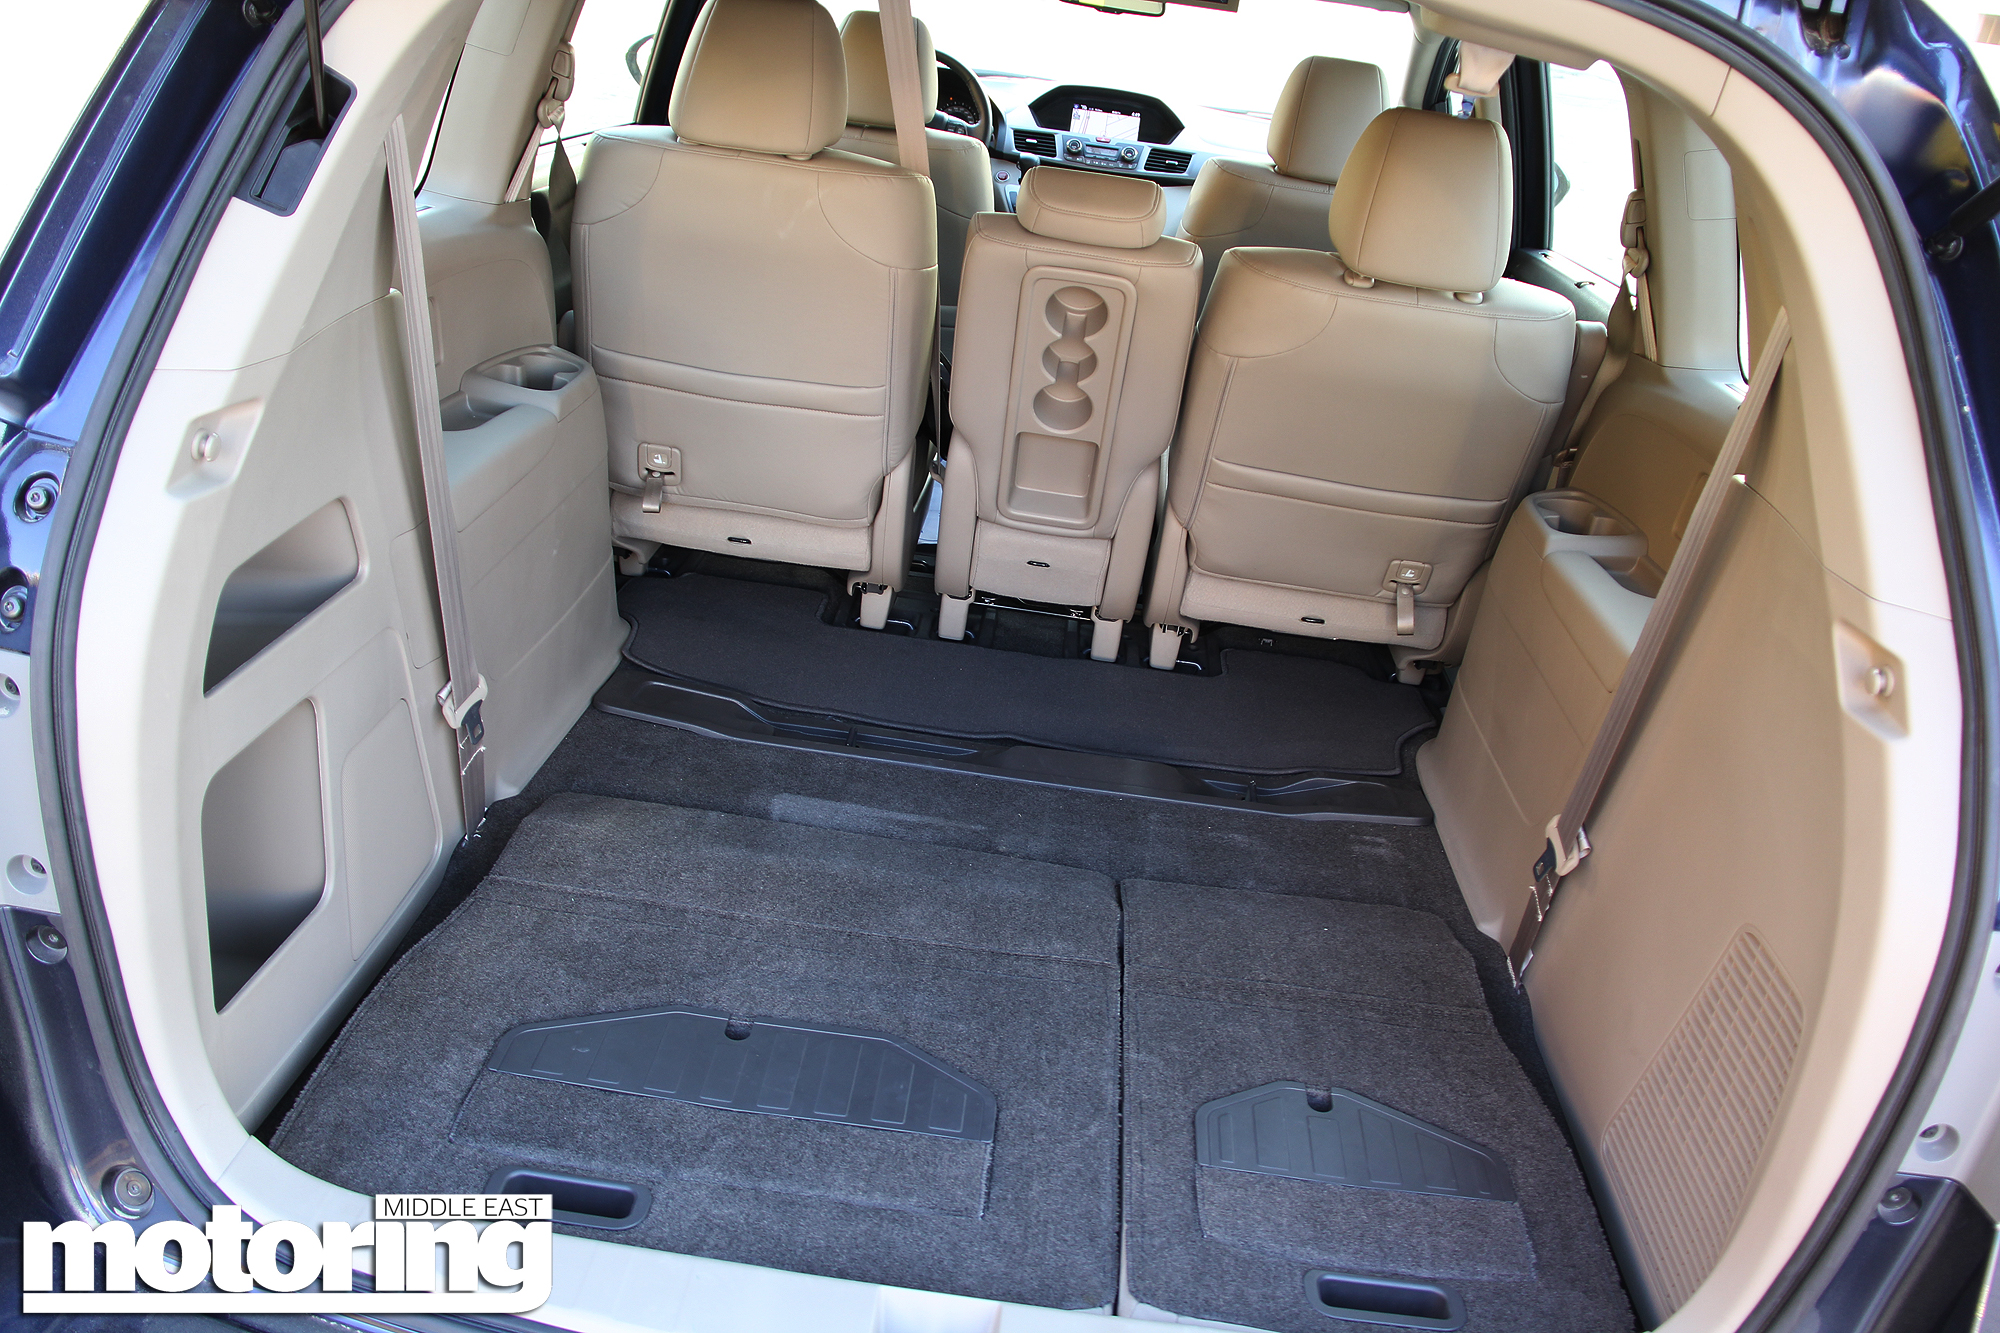 2014 Honda Odyssey Review - Motoring Middle East: Car news, Reviews and Buying guidesMotoring ...